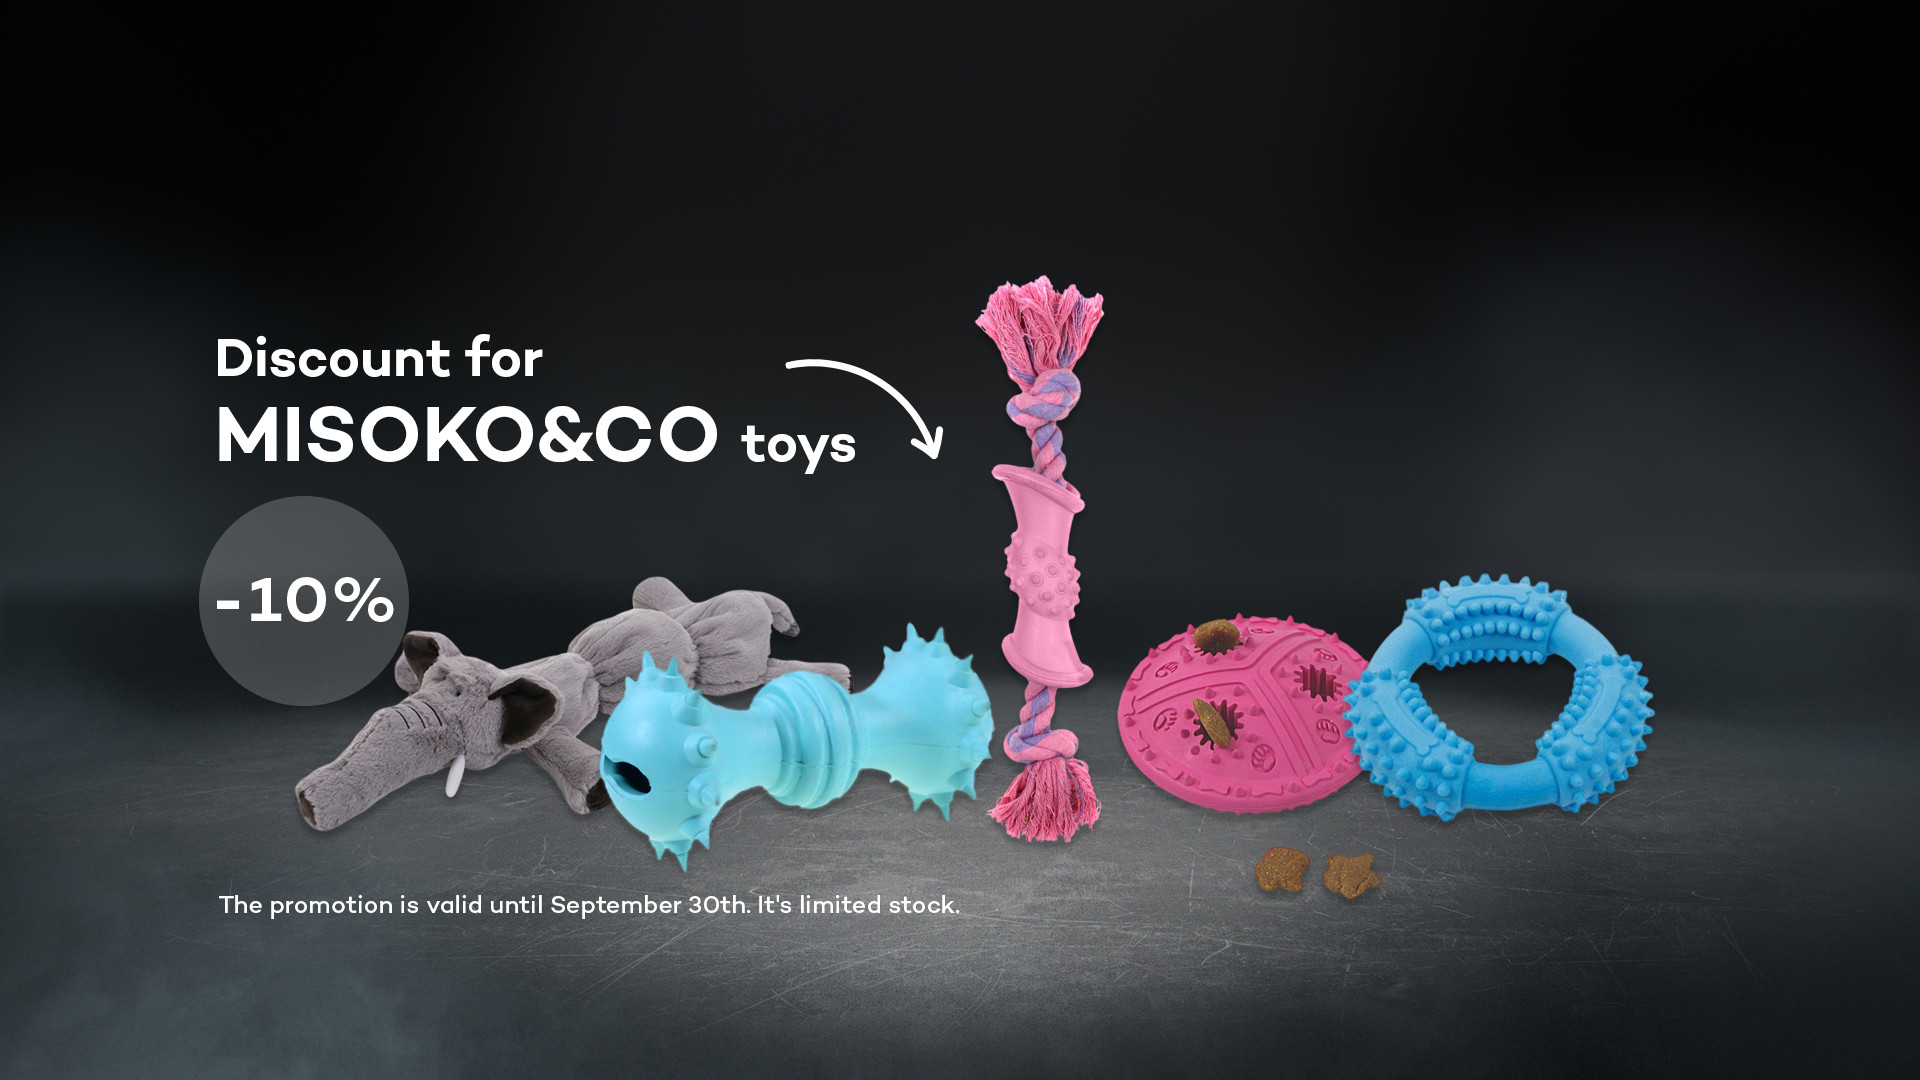 10% discount for MISOKO&CO toys